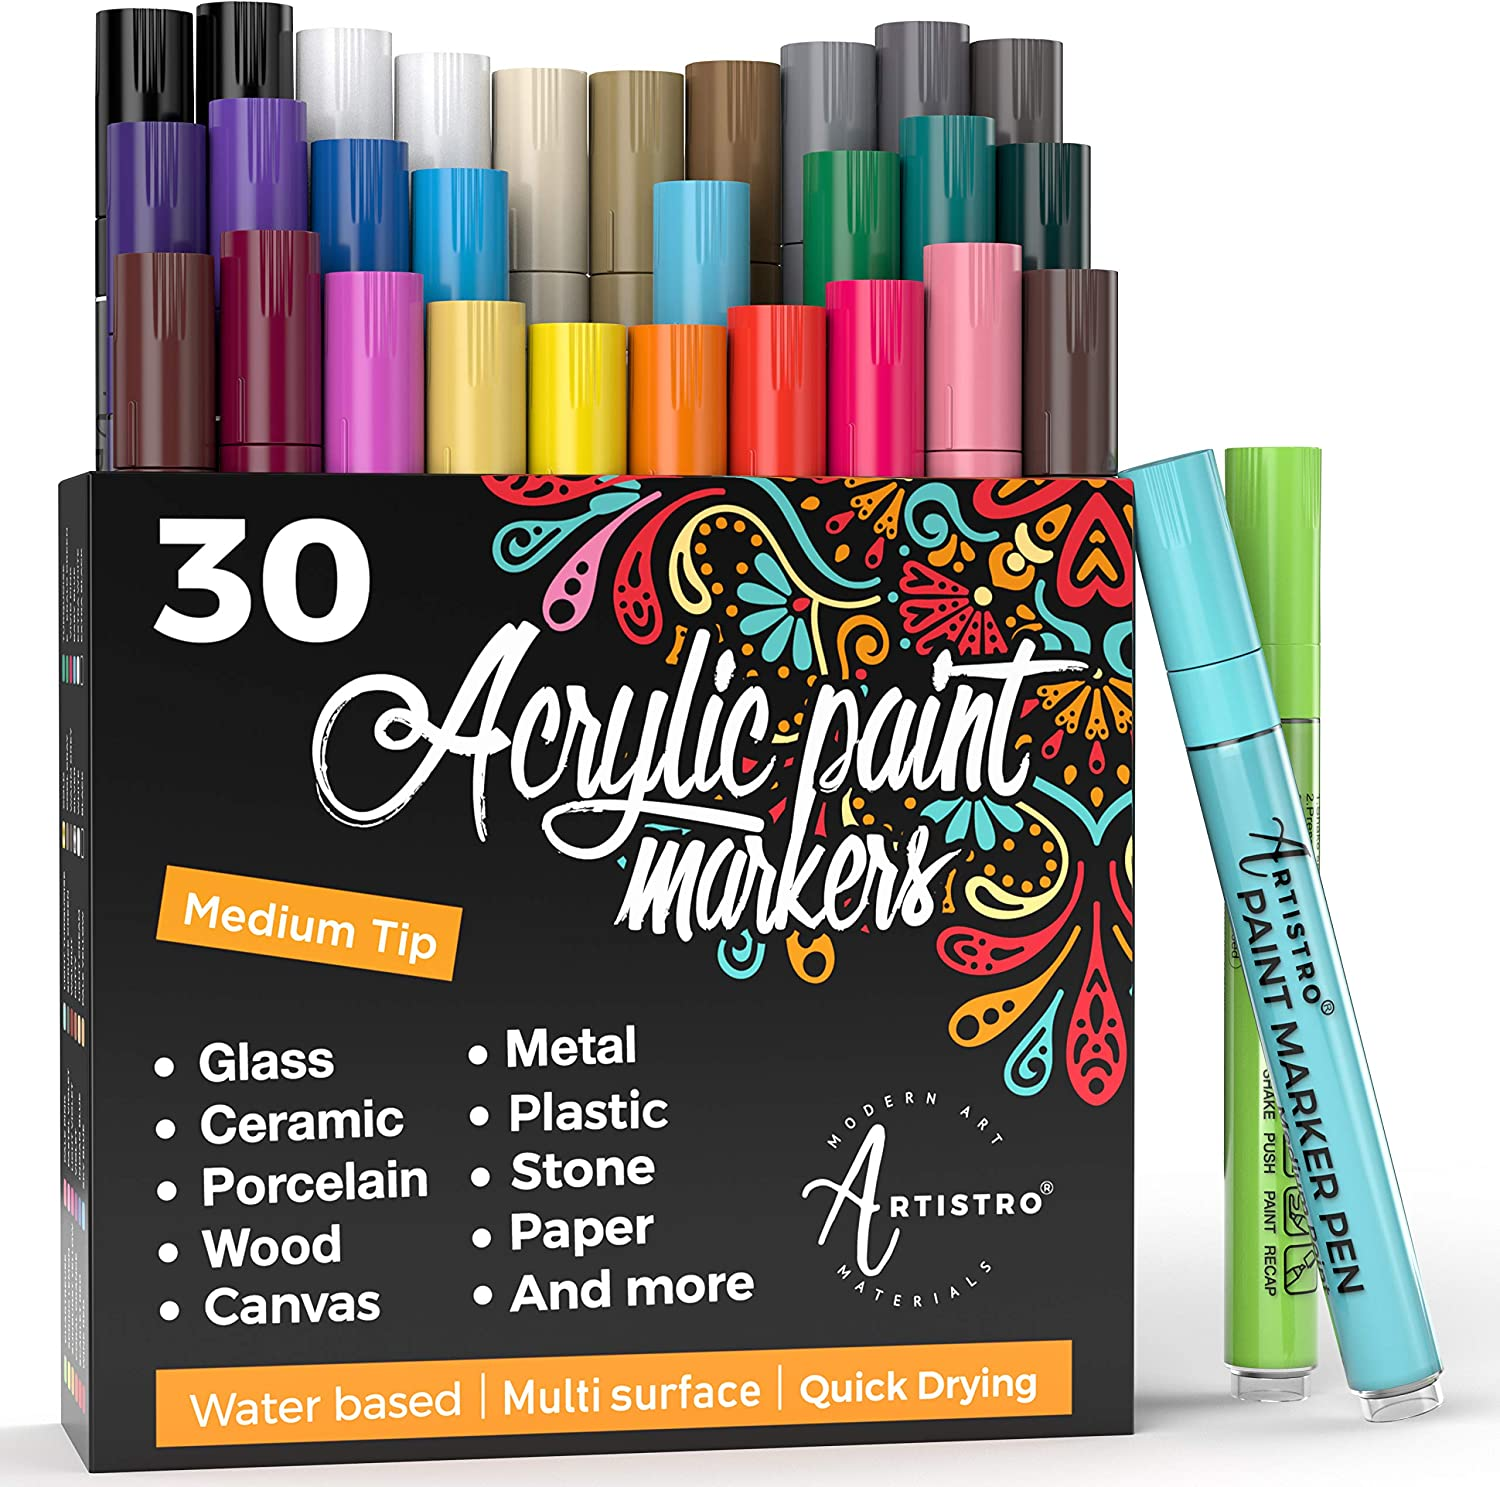 Acrylic Paint Pens – 30 Acrylic Paint Markers Medium Tip (2mm) - Great for Rock Painting, Wood, Fabric, Card, Paper, Photo Album, Ceramic & Glass - 28 Colors + Extra Black & White Paint Marker Set